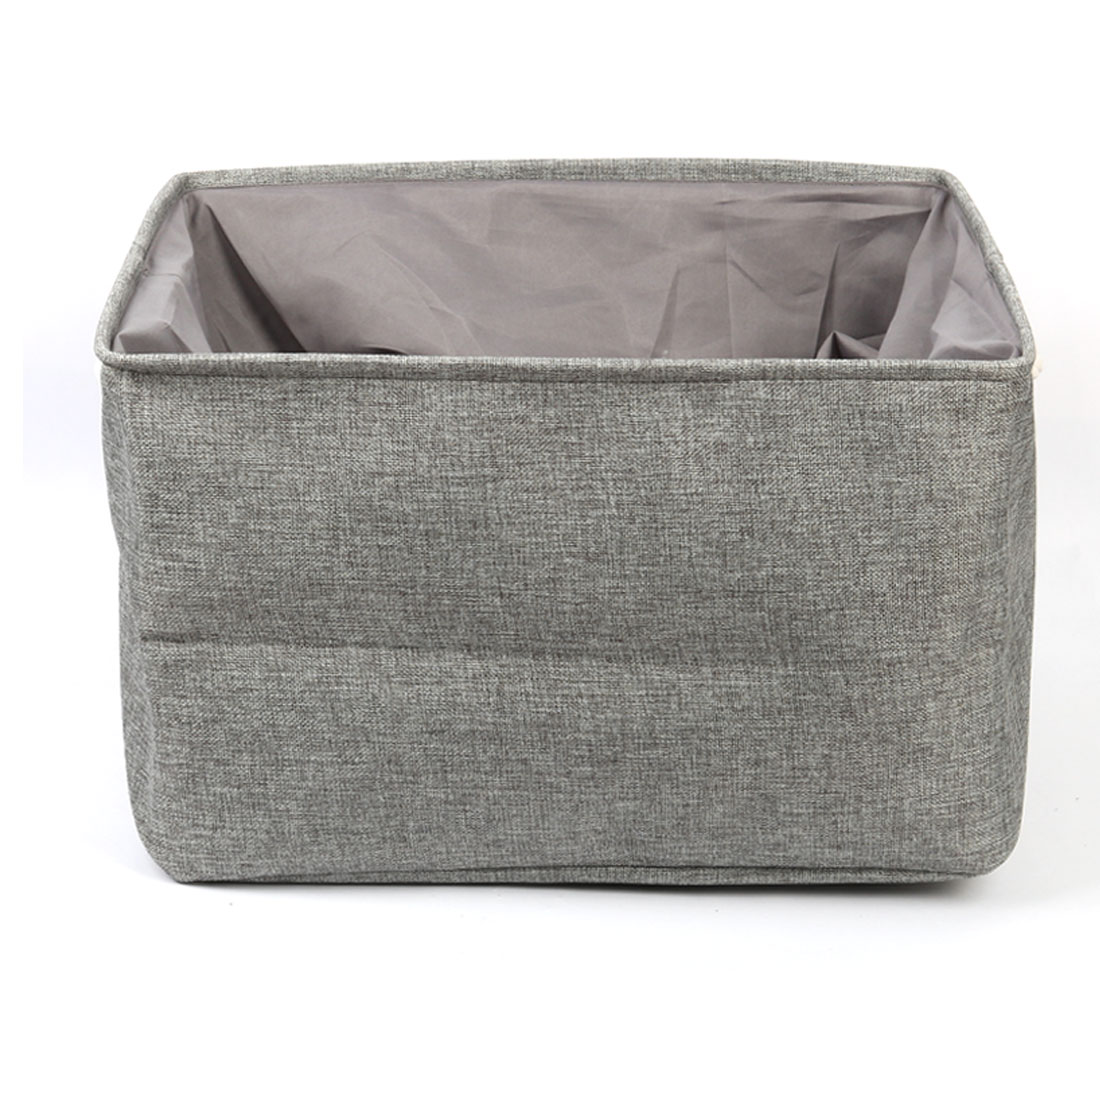 Storage Basket Closet Toys Box Container Fabric Bin Gray XXL Size